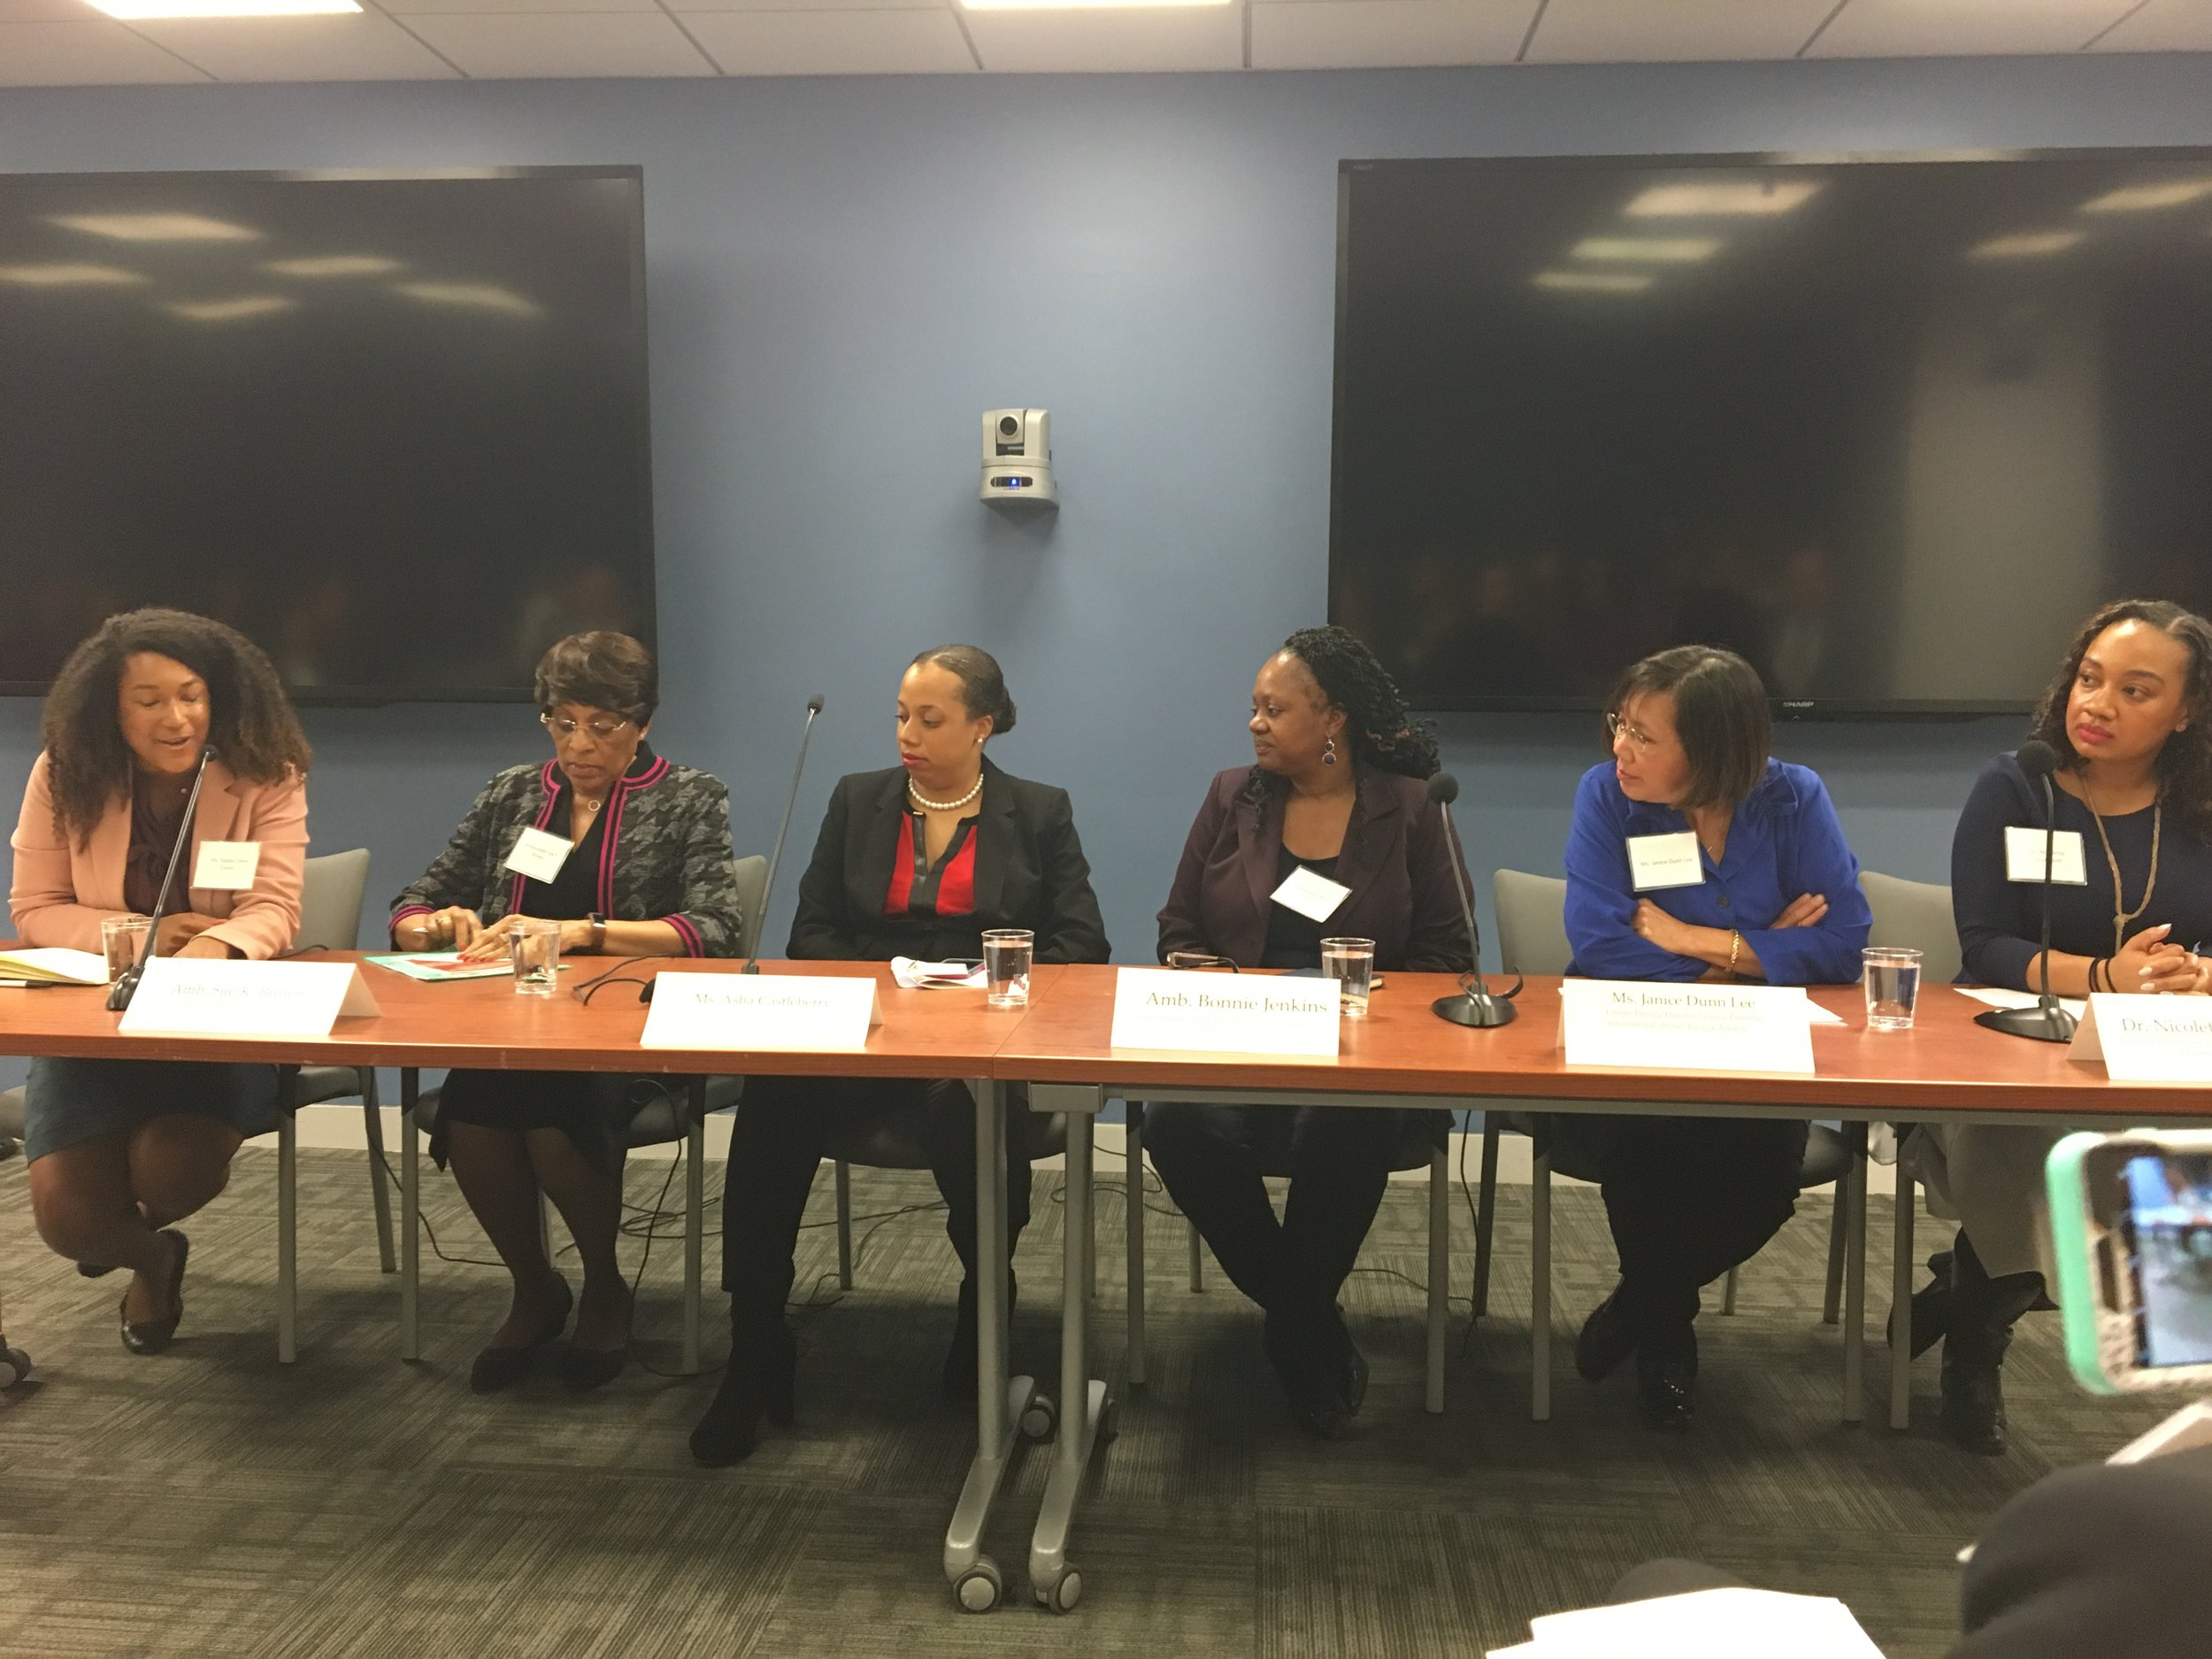 Panelists at the WCAPS and WIIS event on March 29th